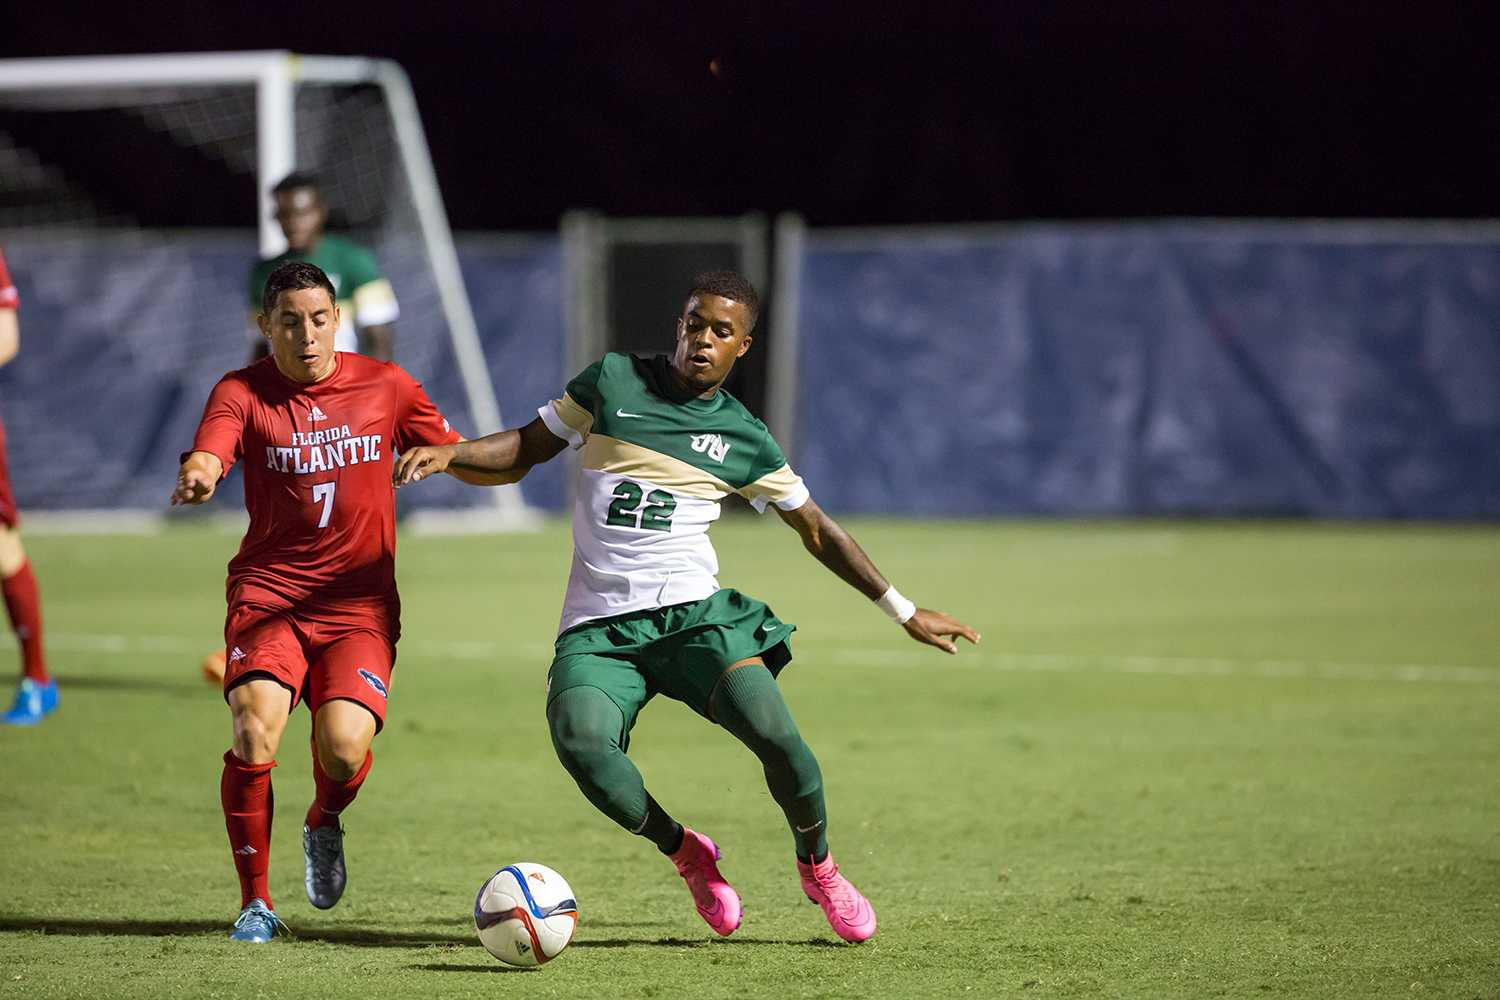 Senior midfielder Ronald Garcia (7) fights for possession against junior defender Joe Amico (22) in the Owls' first home game of the season against the Jacksonville Dolphins. Brandon Harrington | Contributing Photographer